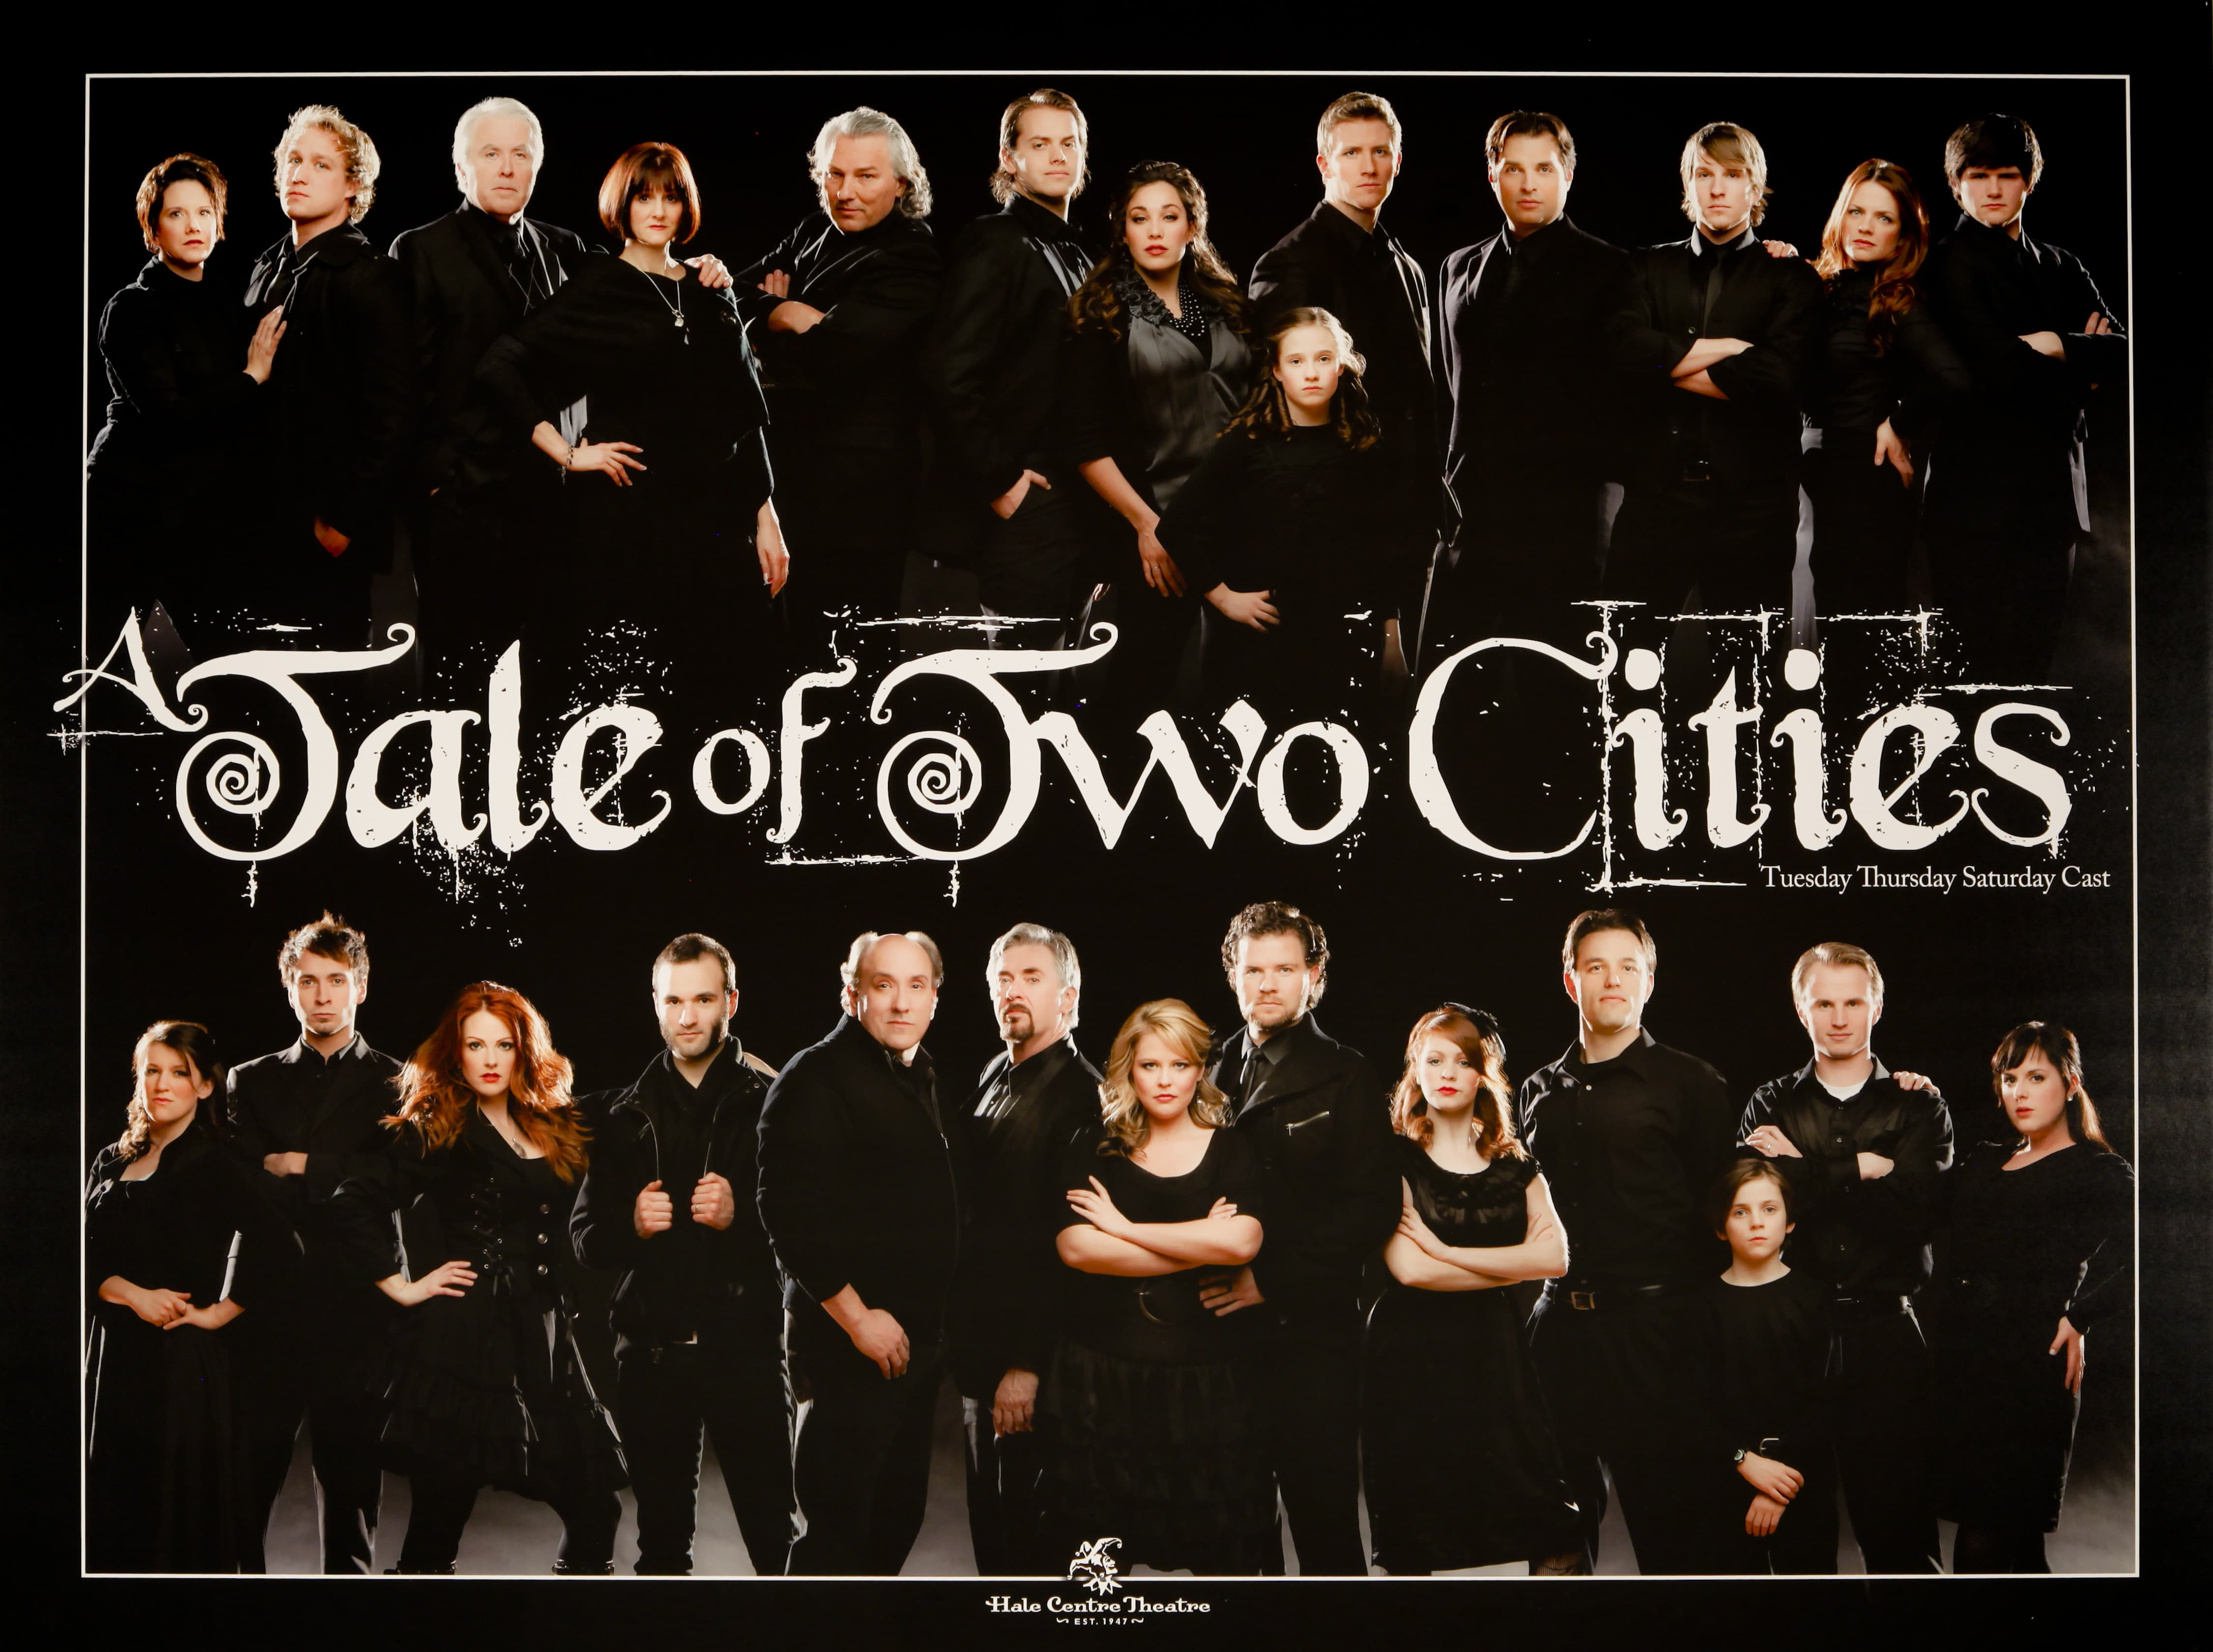 Hale Centre Theatre's 2011 Tale of Two Cities Cast